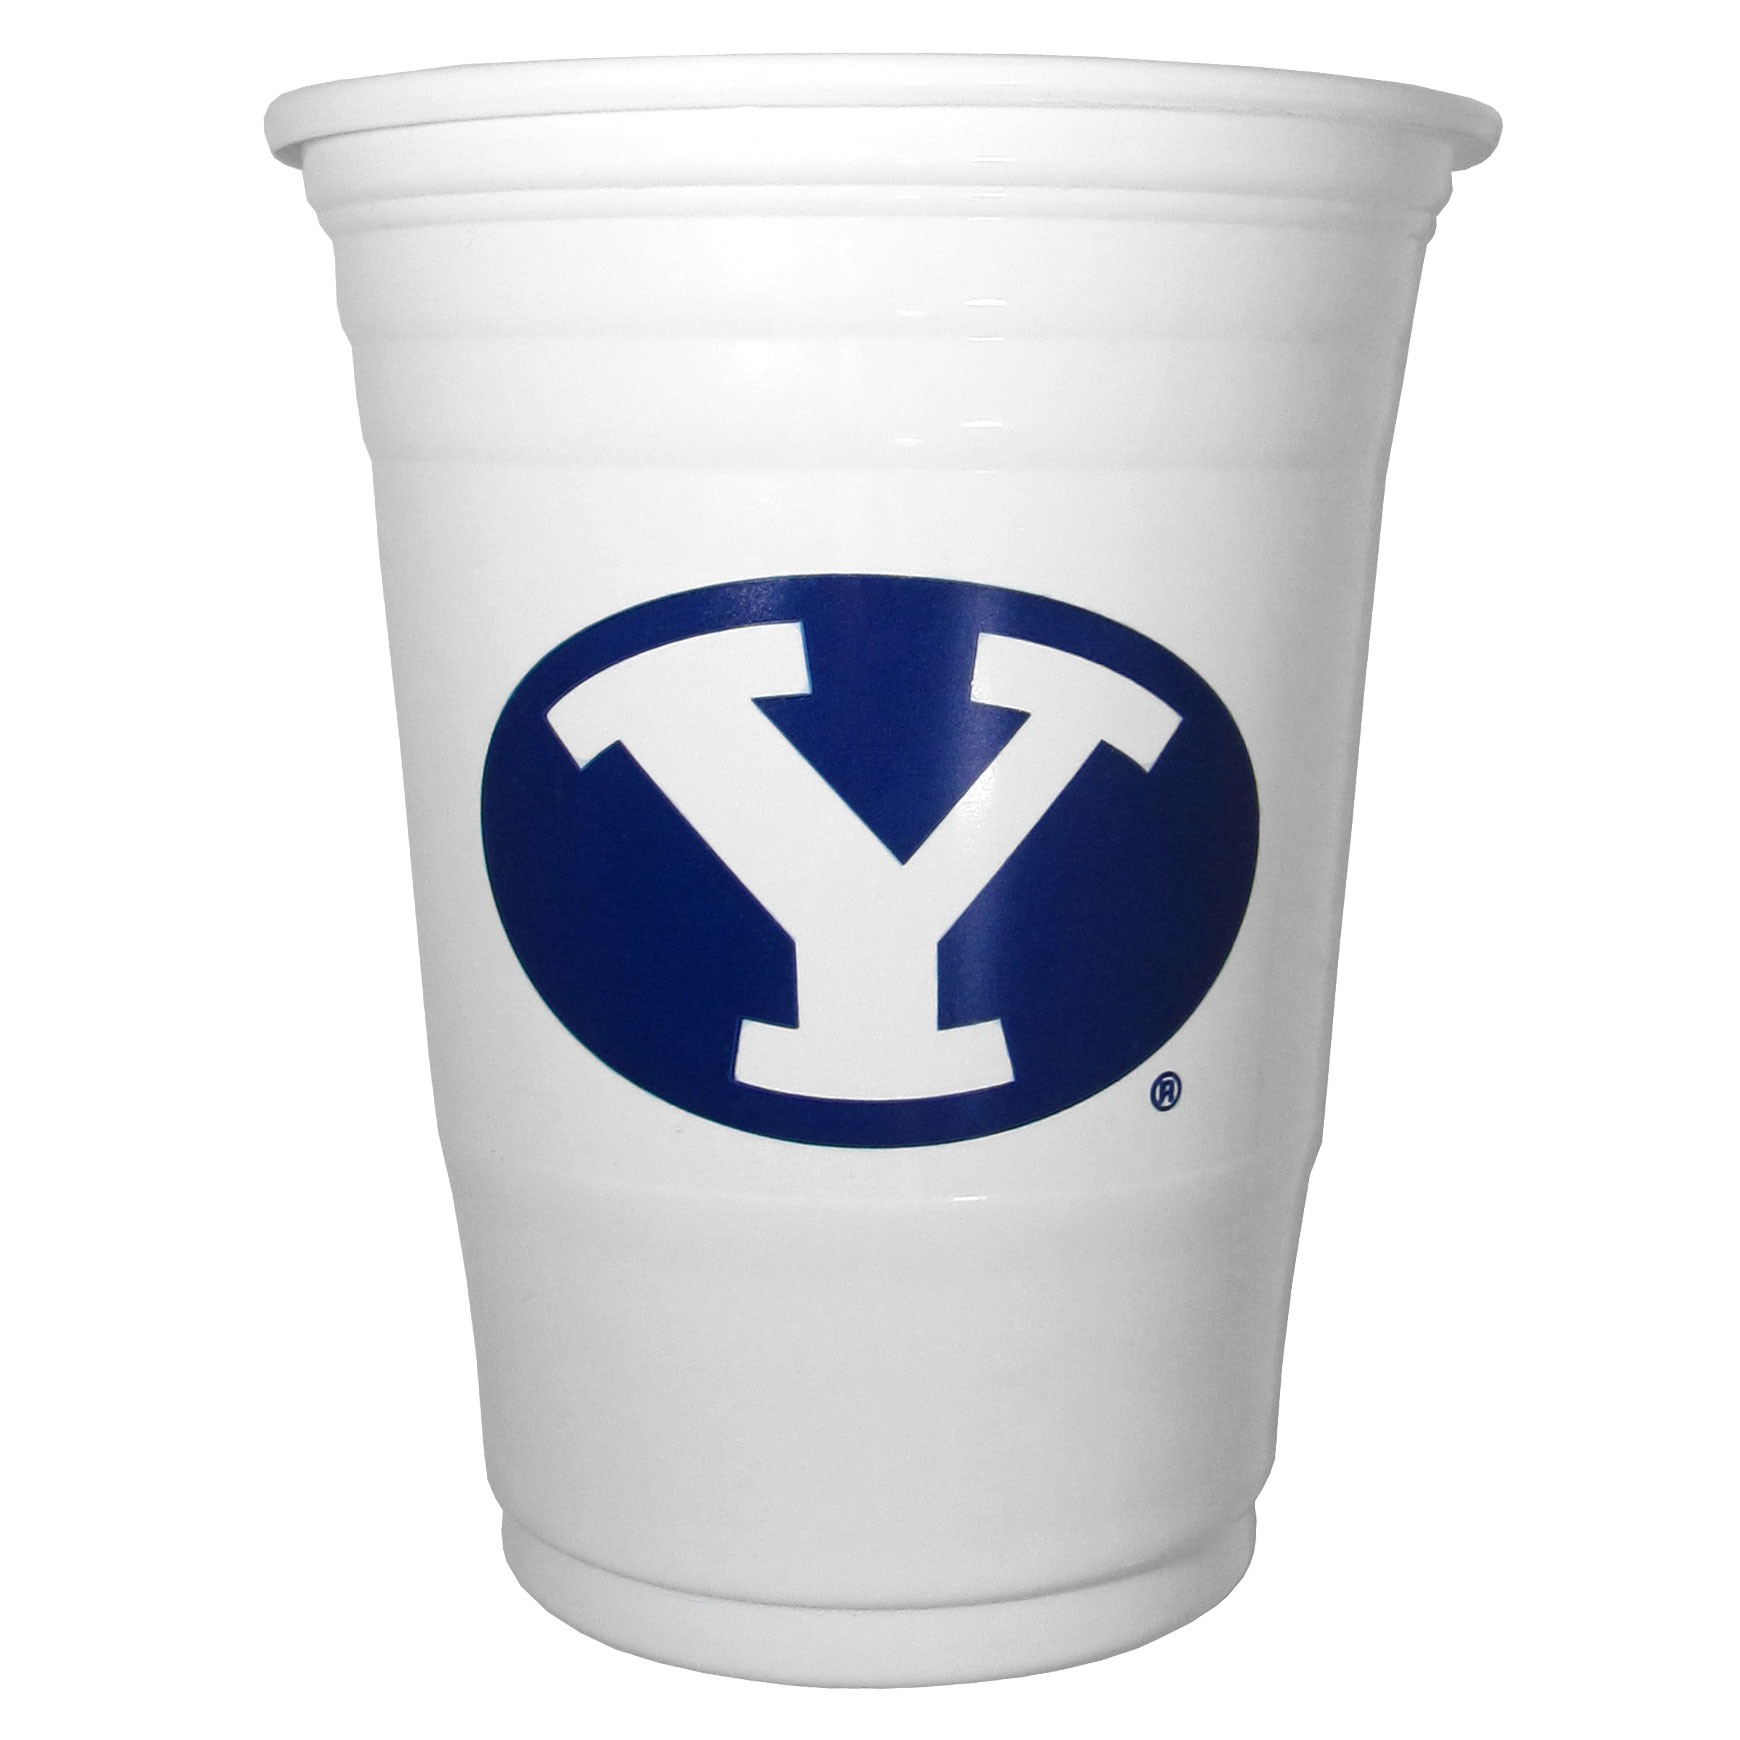 BYU Cougars Plastic Game Day Cups - Our 18 ounce game day cups are what every tailgating or backyard events needs! The cups feature a big BYU Cougarslogo so you can show off your team pride. The popular 18 ounce size is perfect for drinks or ping pong balls! Sold in sleeves of 18 cups.